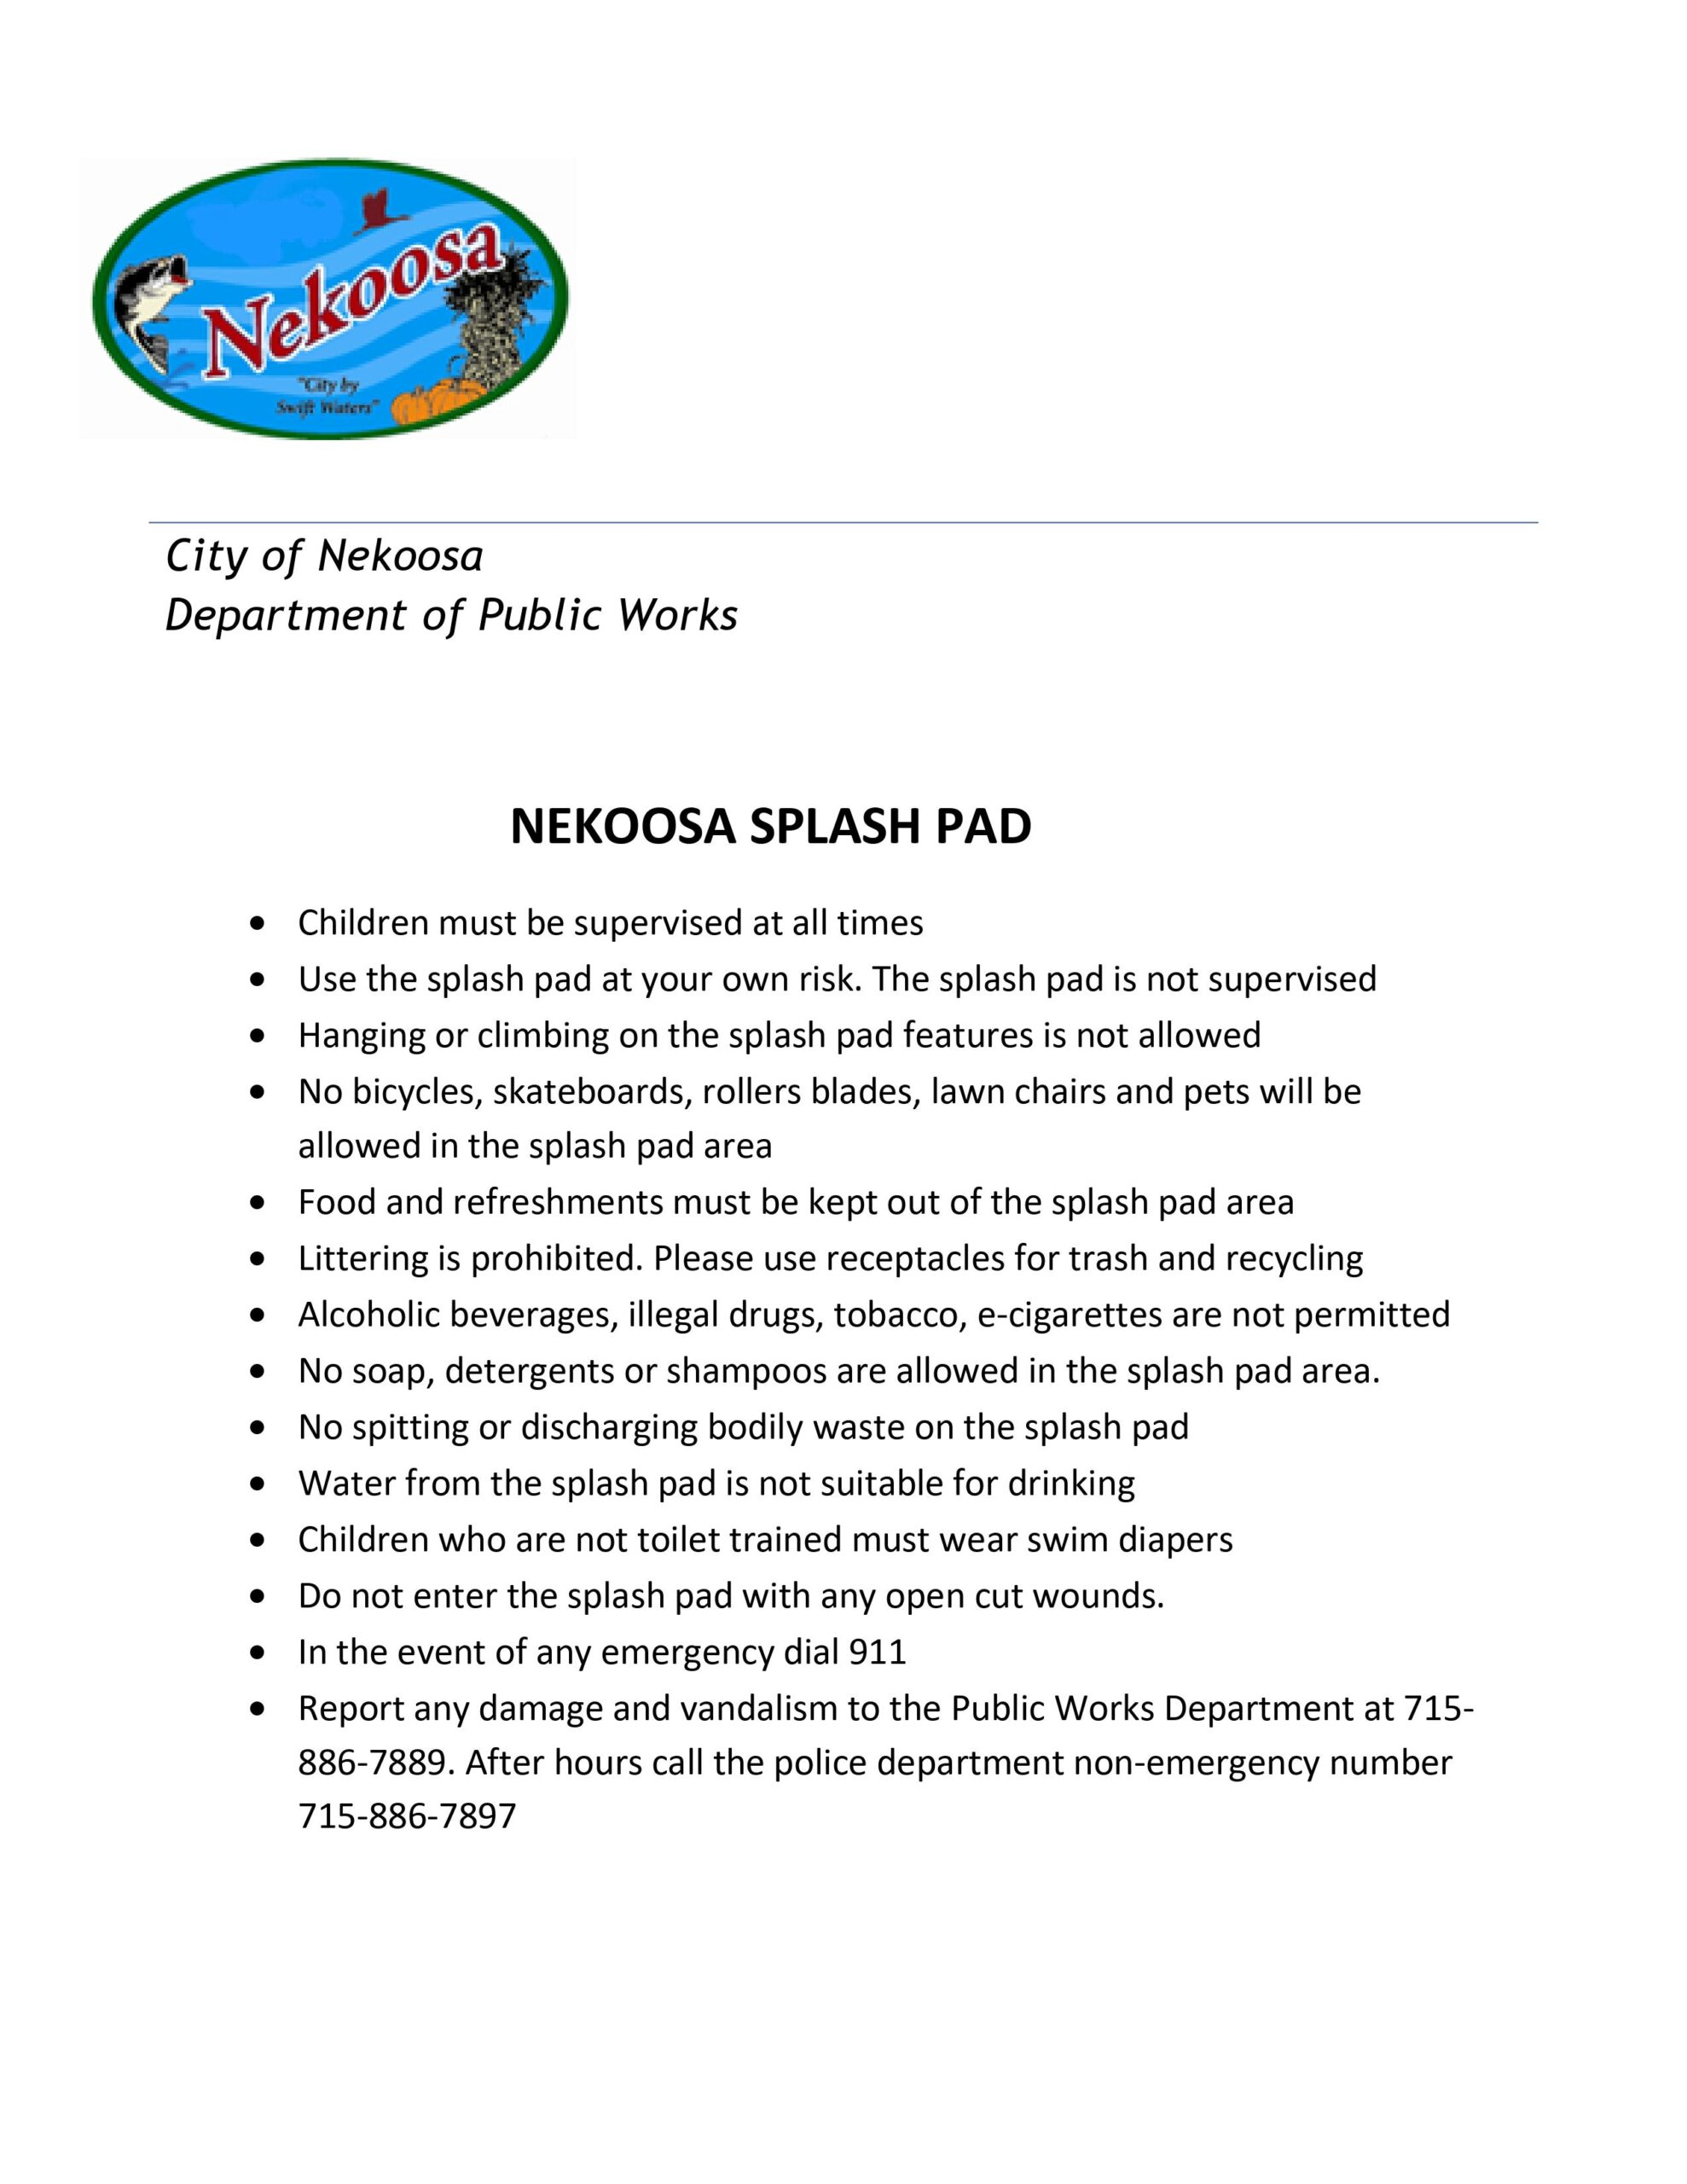 Splash Pad General Rules